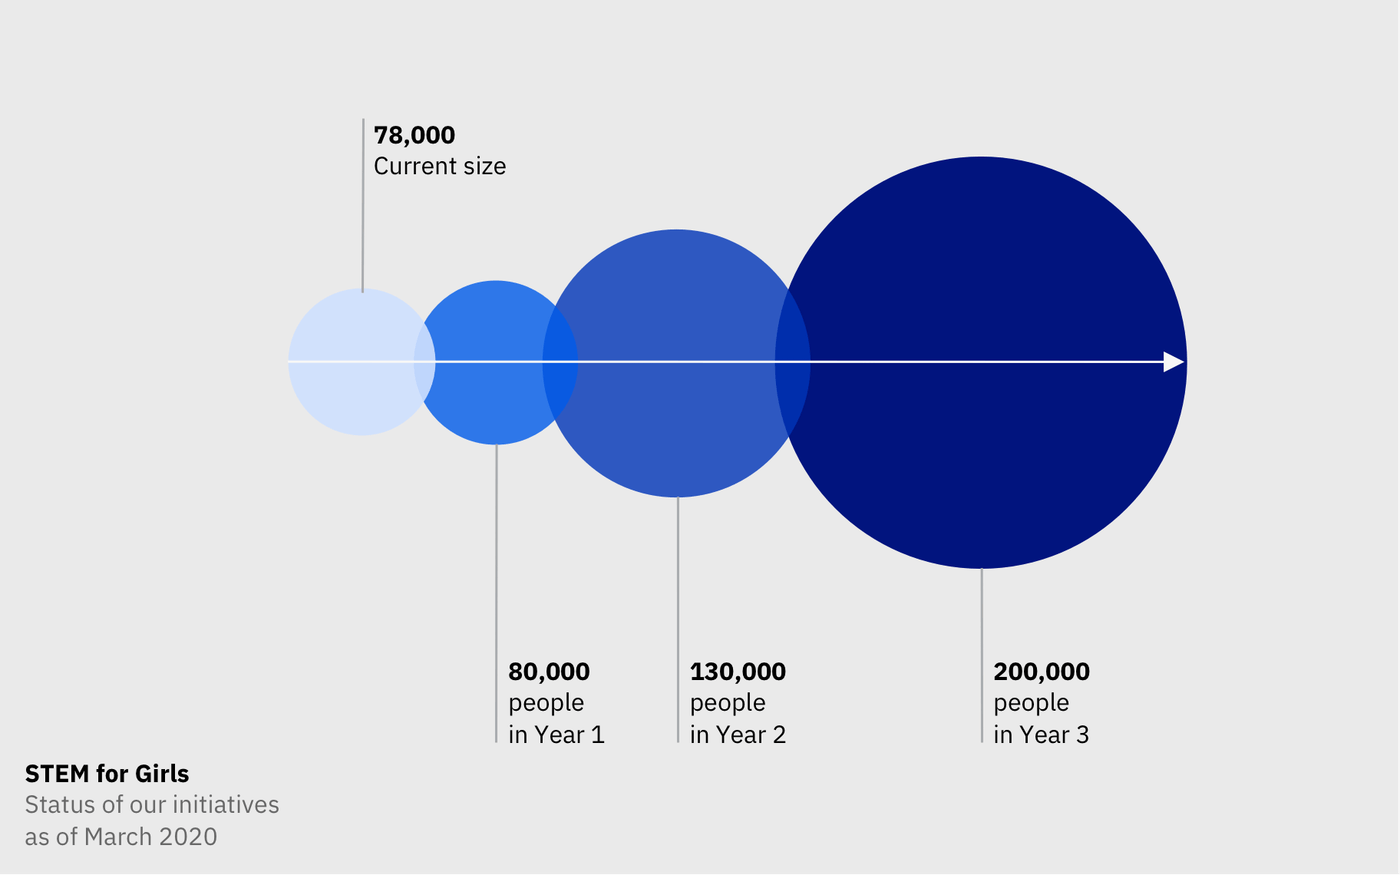 Progression of number of users from March 2020 at 78000 to year 1 at 80000, year 2 at 100000 and year 3 at 200000